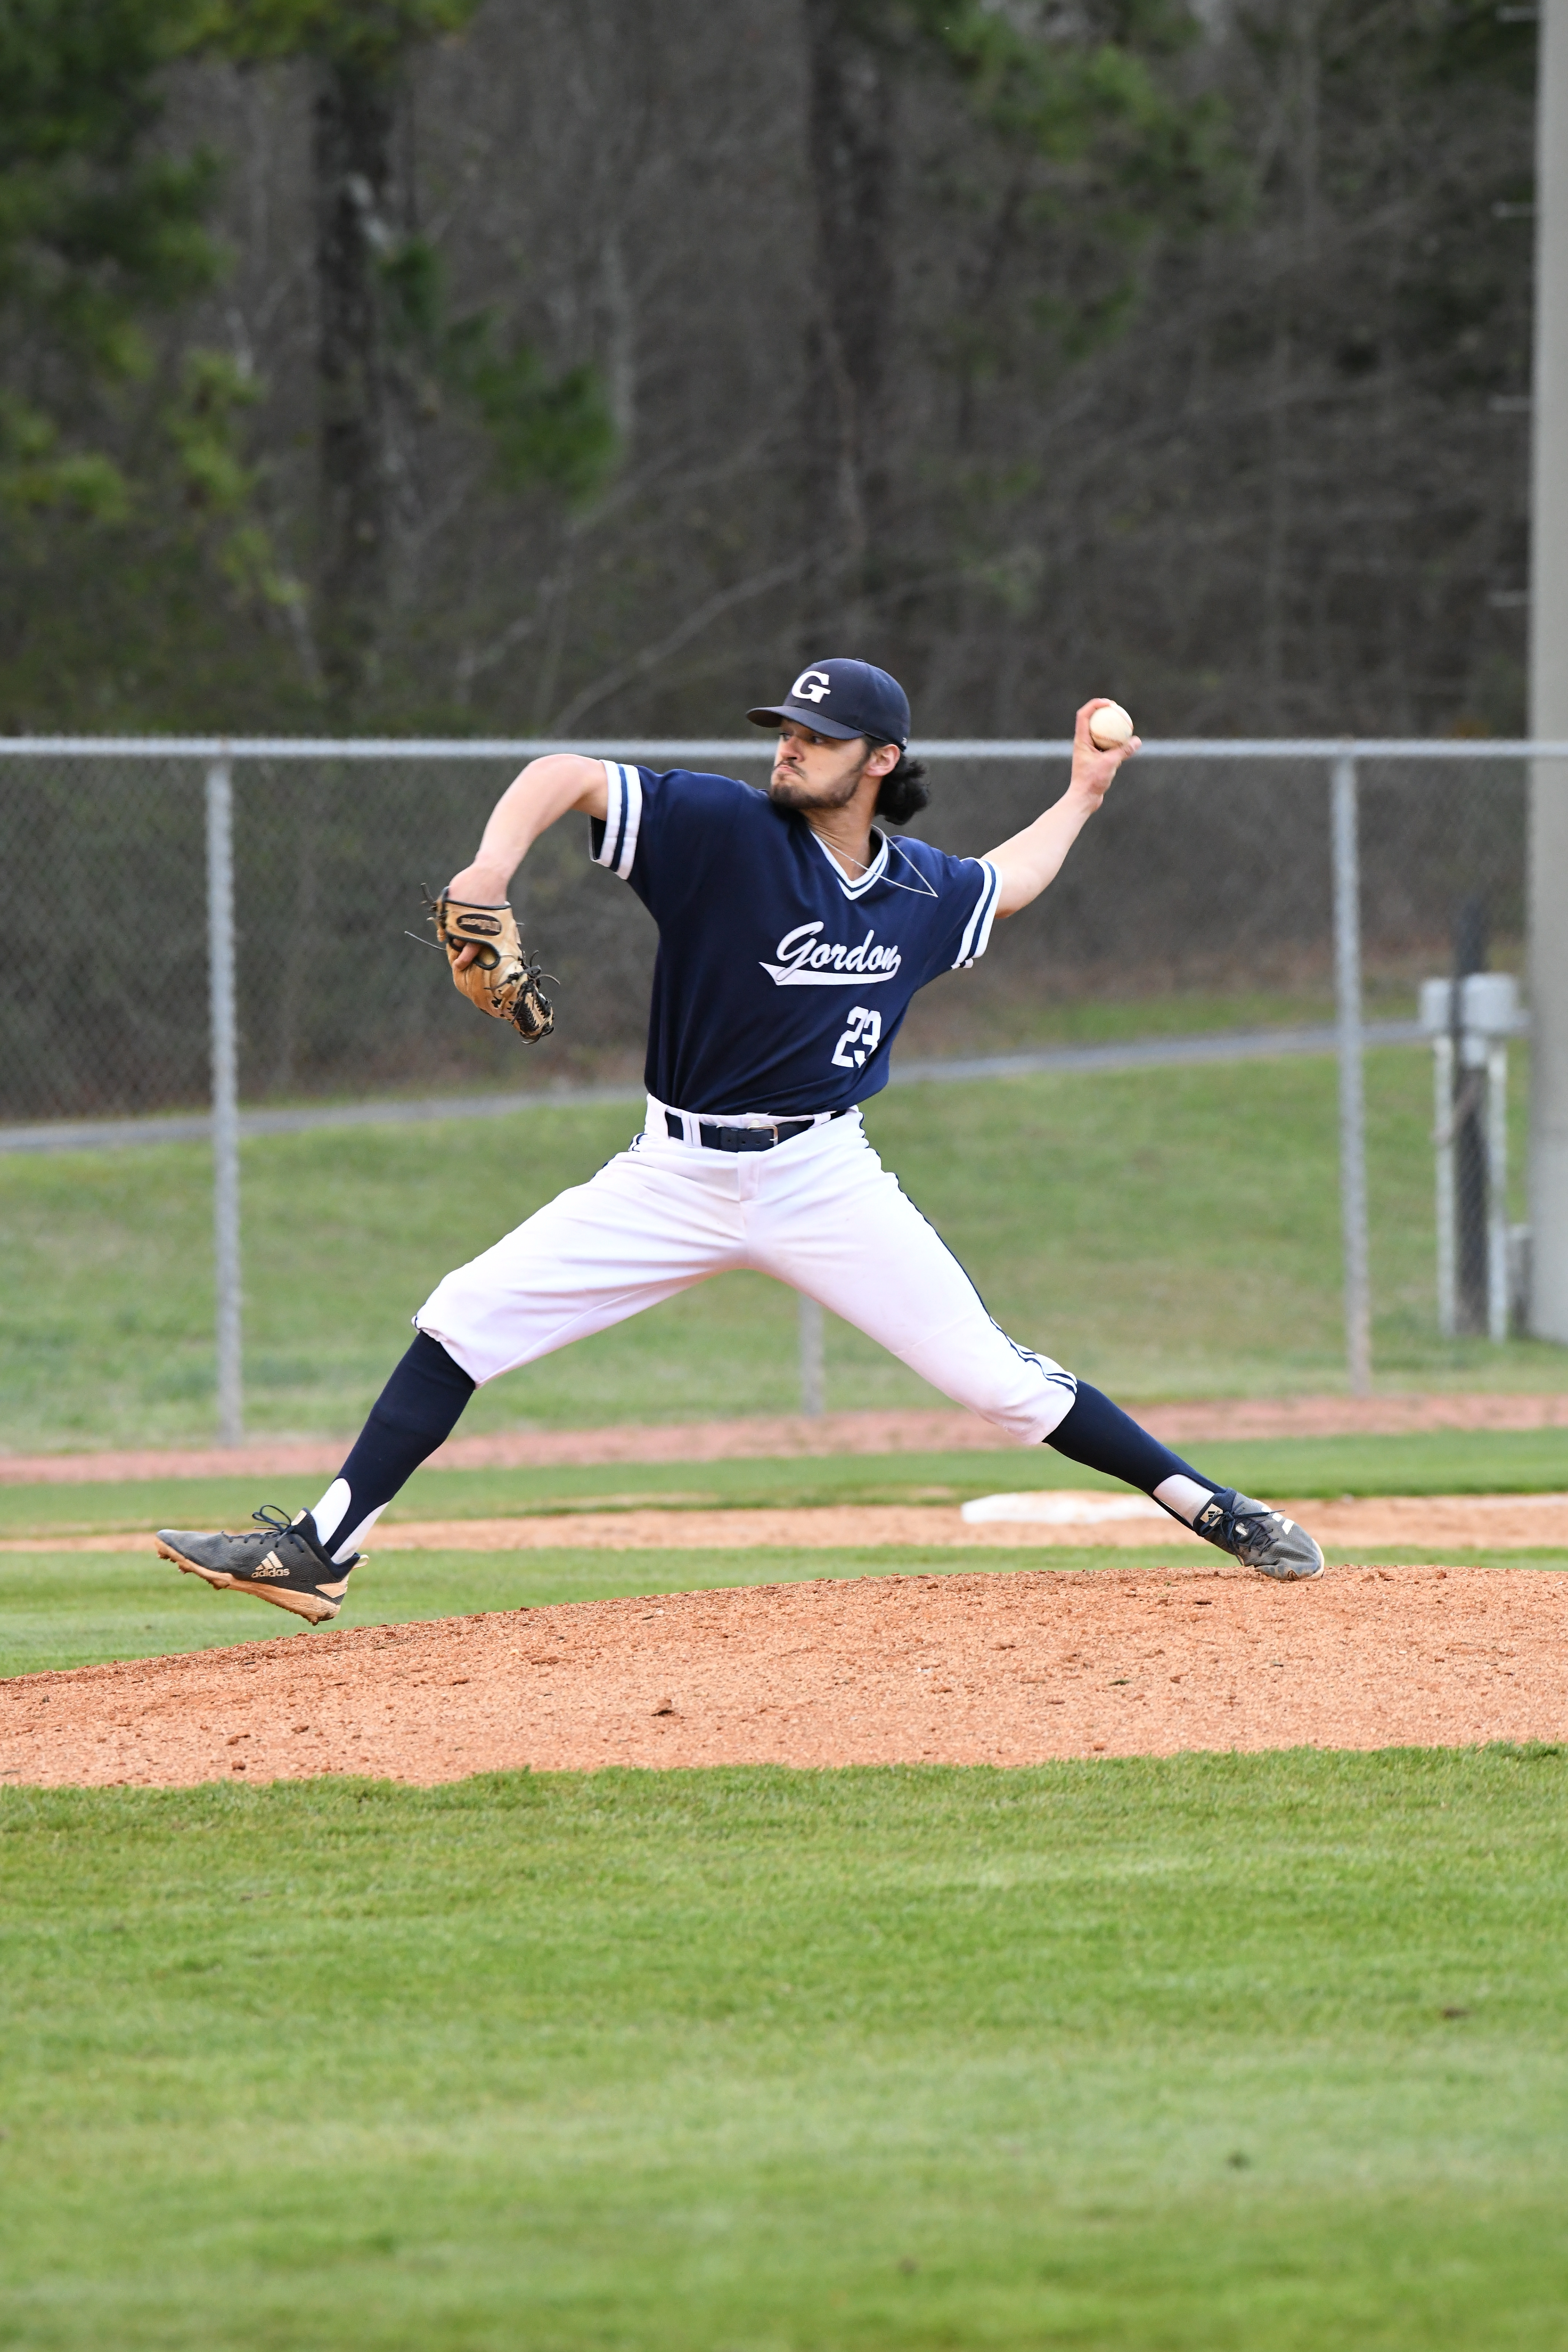 Freshman left-hander Jaxon O'Neal (Newnan, Ga. / Newnan HS) delivers a pitch for the Highlanders during the 2020 season.